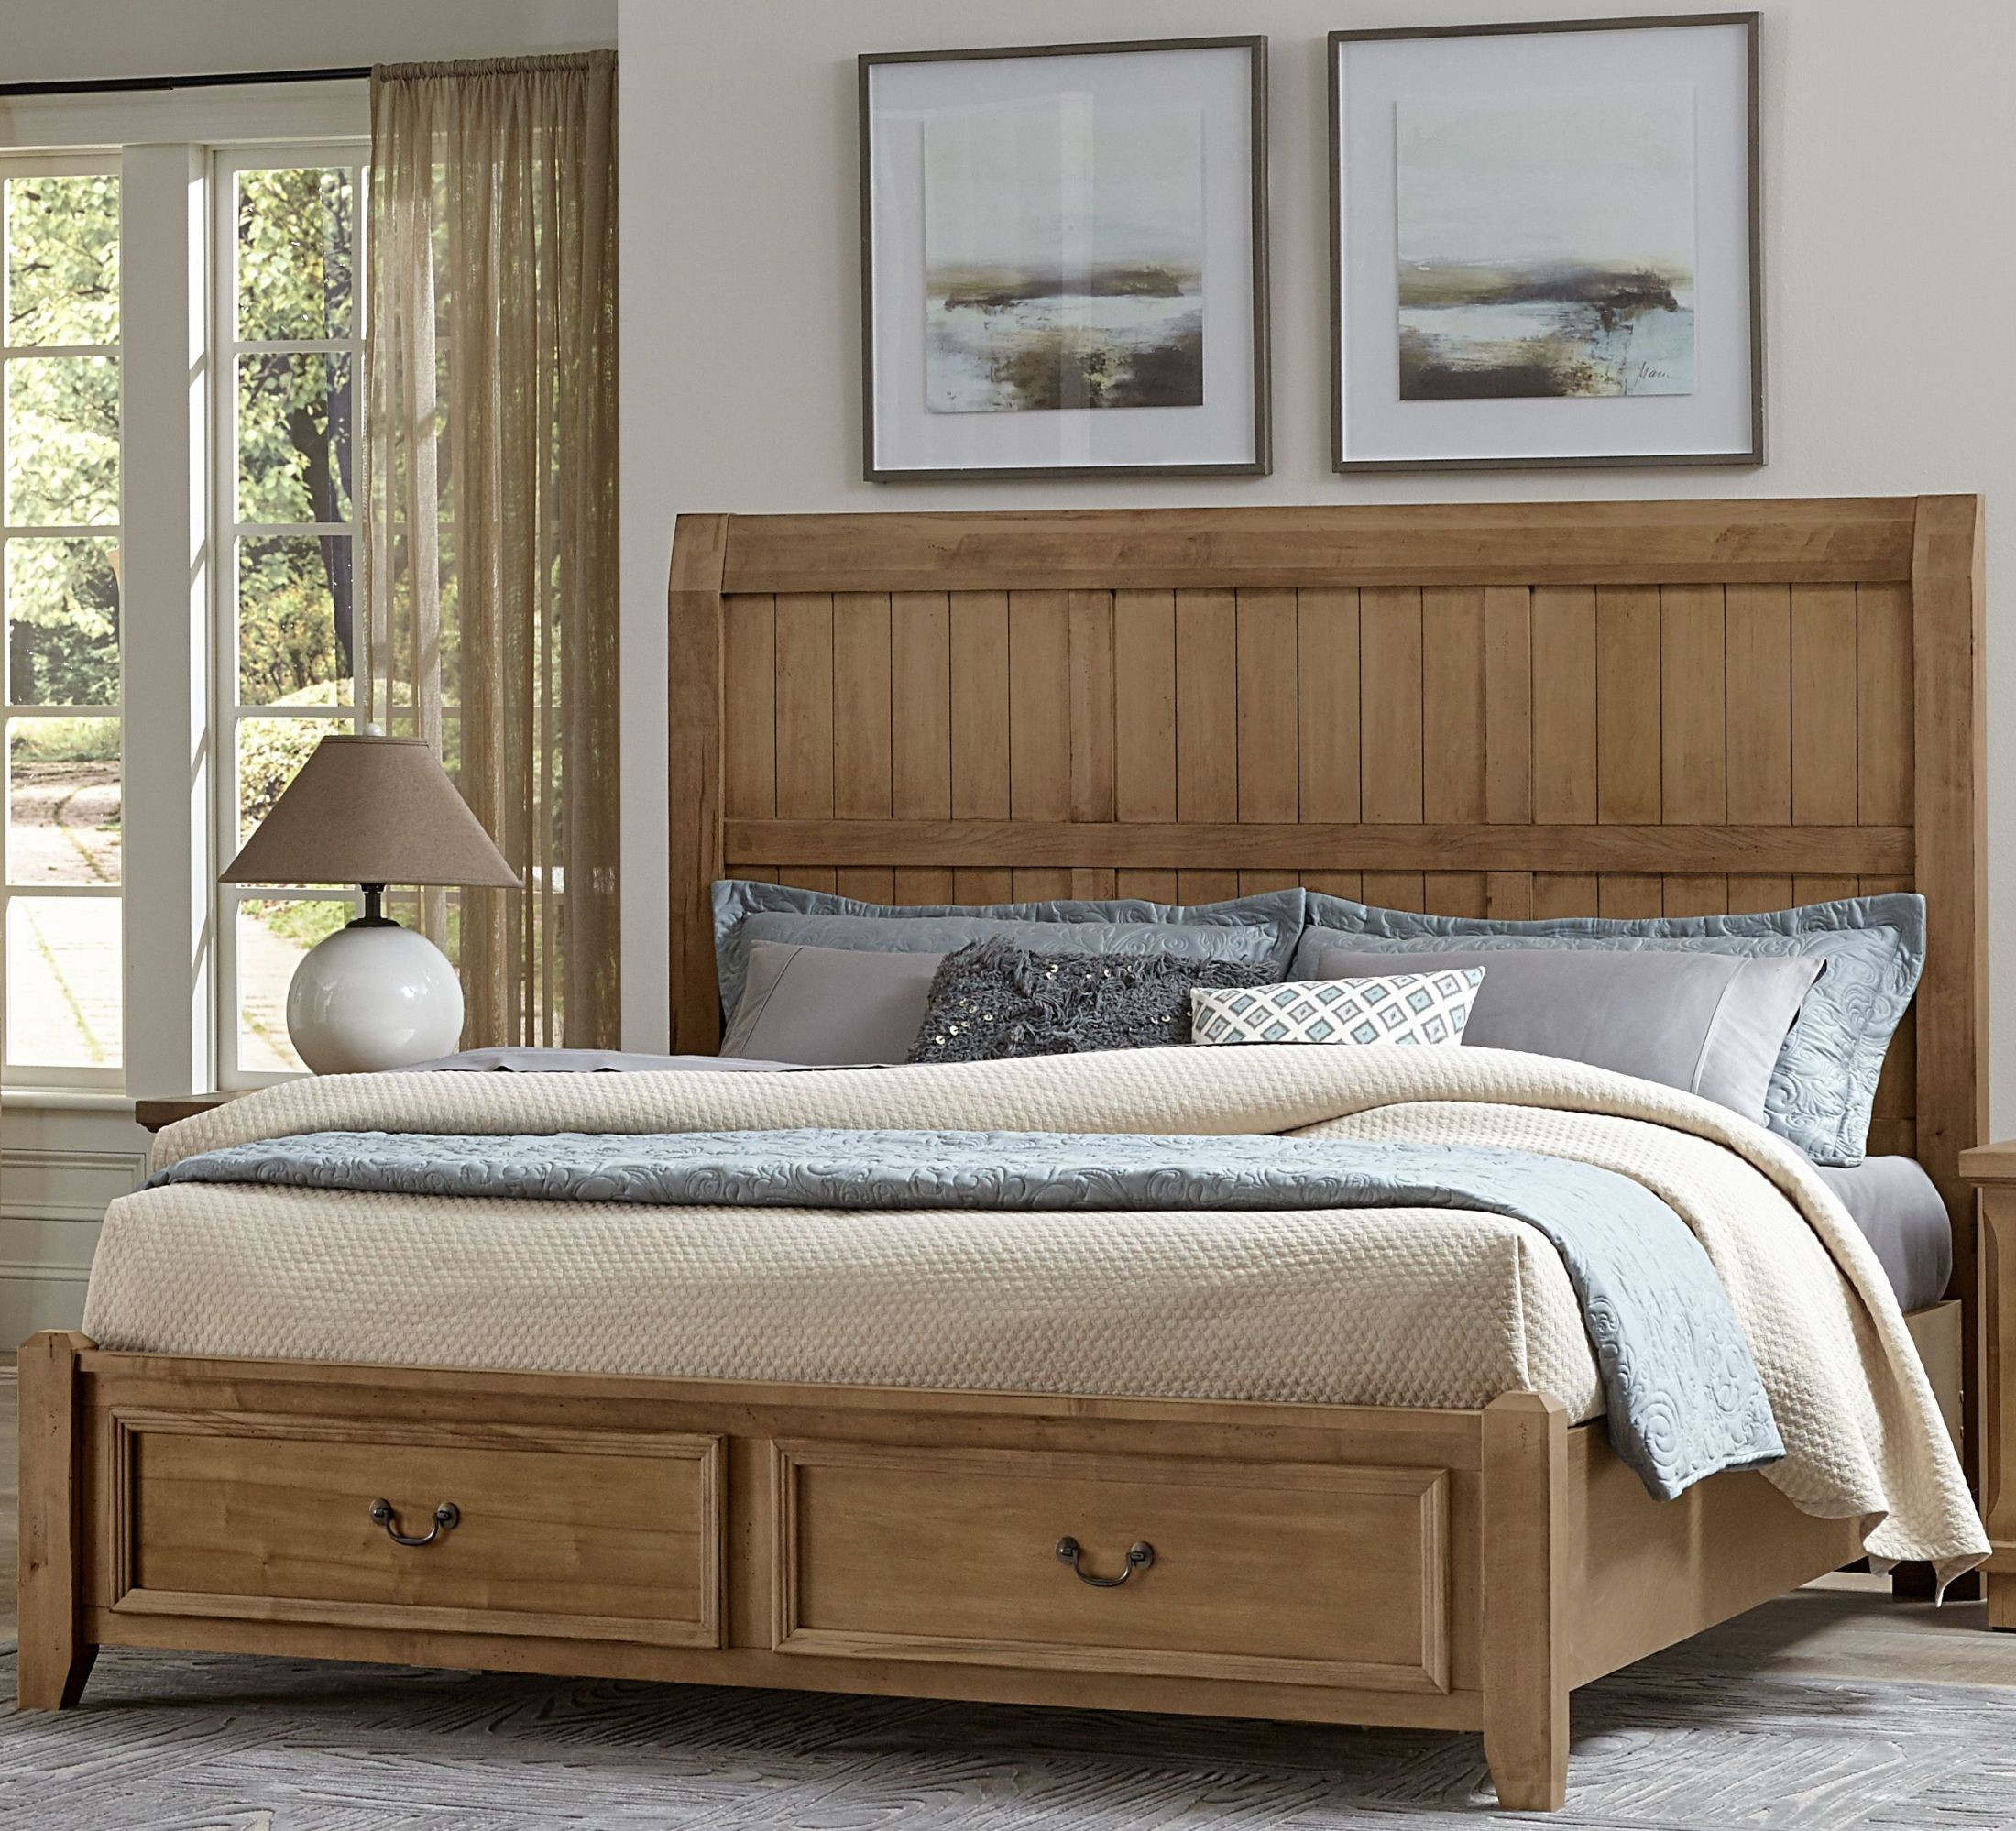 Timber Creek Natural Maple Queen Timber Storage Panel Bed From Vaughan Bassett Coleman Furniture